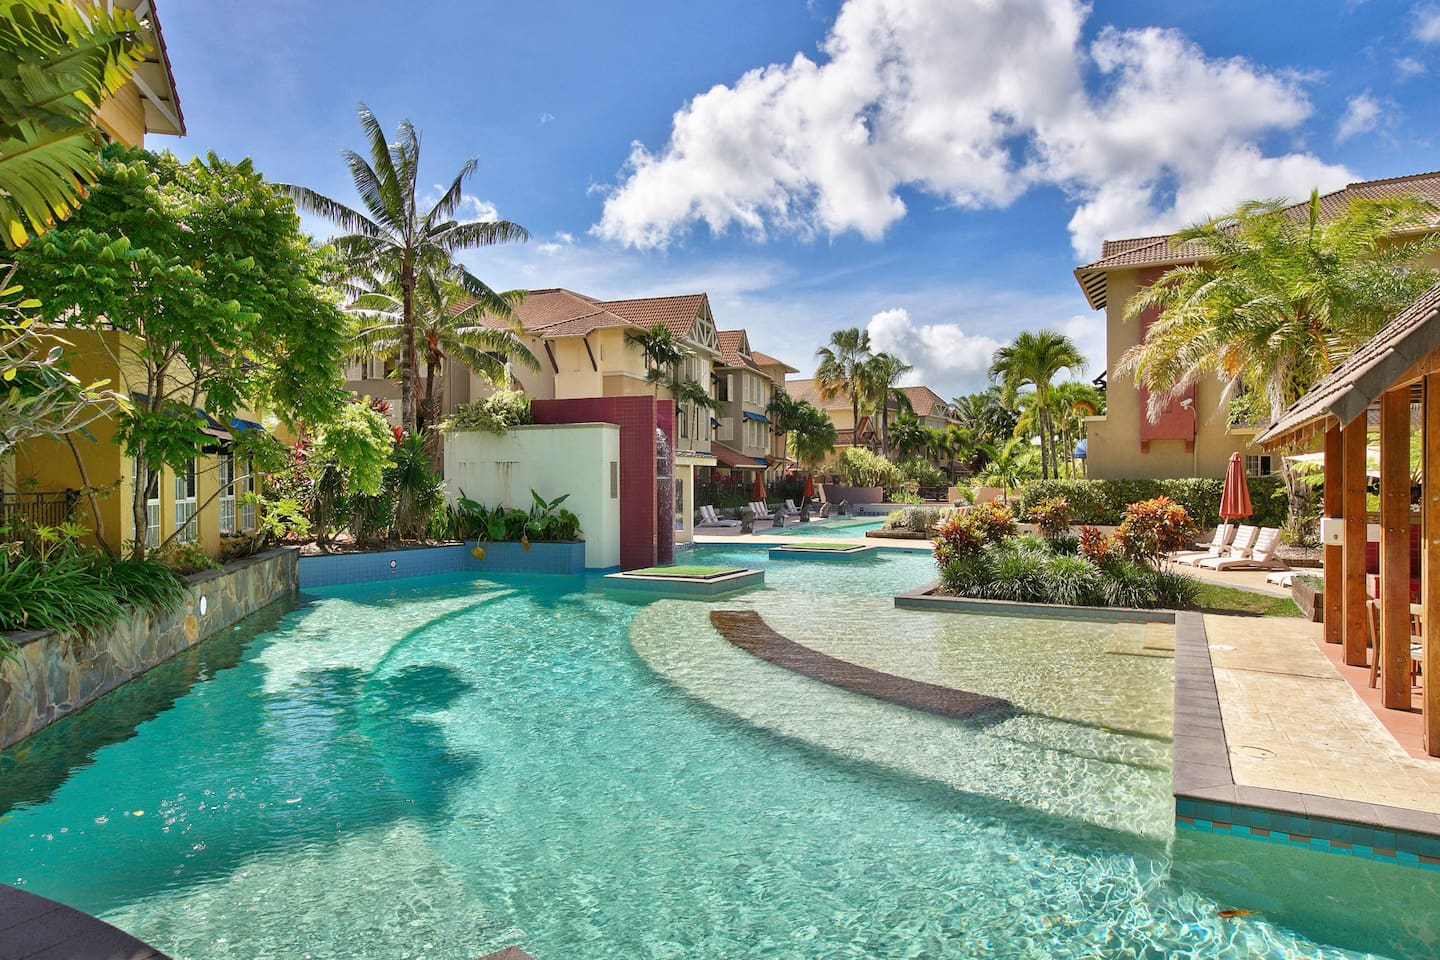 4 Swimming pools and spa to choose from